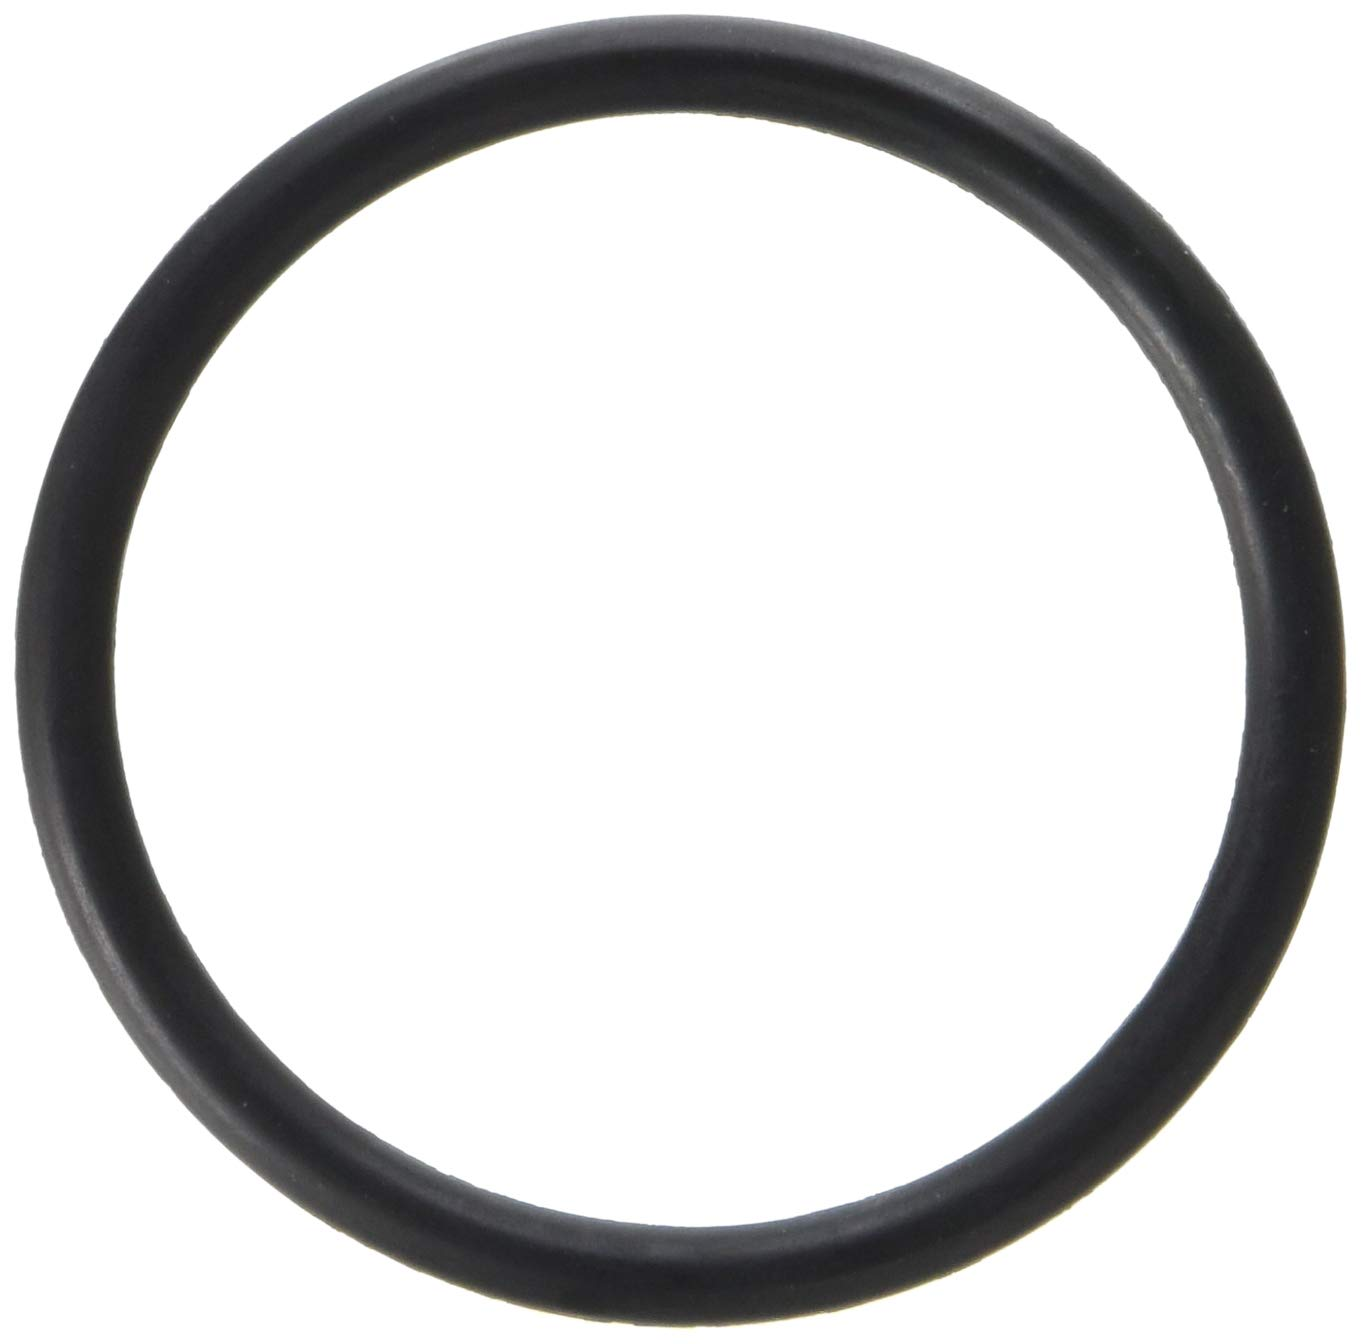 Pentair 35505-1424 O-Ring Adapter to Tank Replacement for select Sta-Rite Pool and Spa Filters Pentair - Distribution